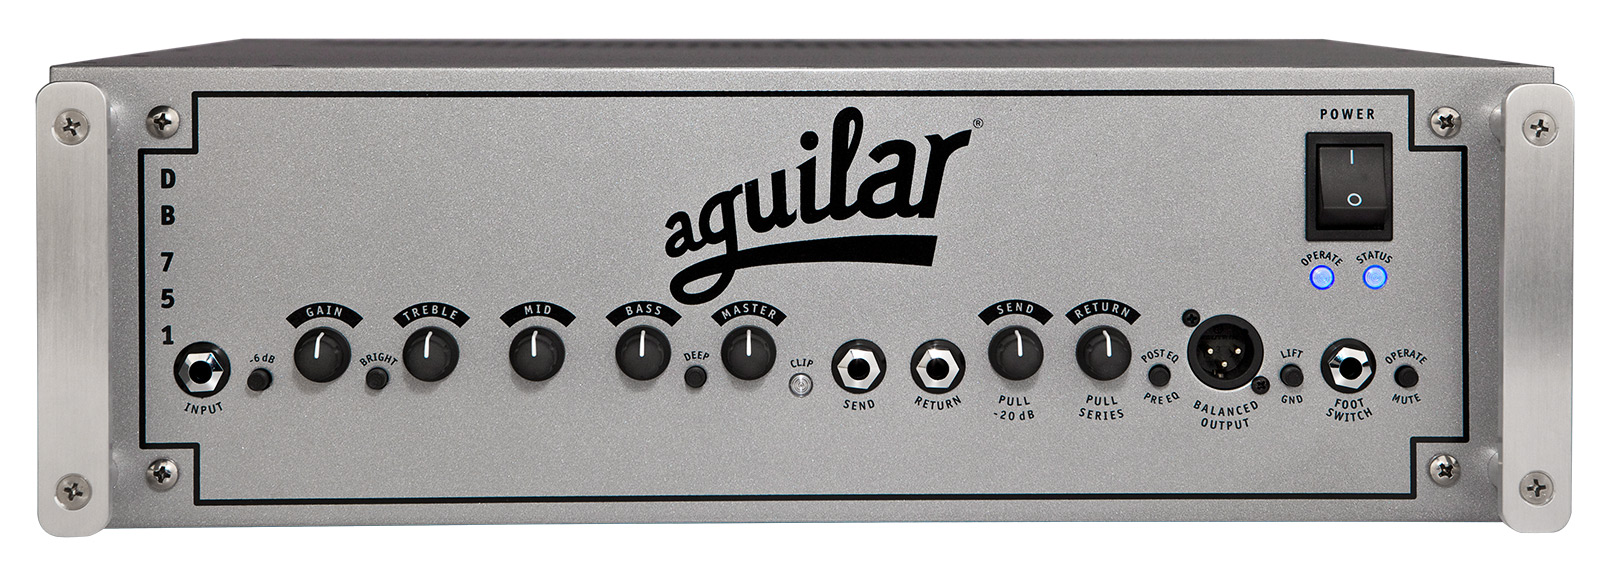 Aguilar DB751 Hybrid Bass Amplifier Head